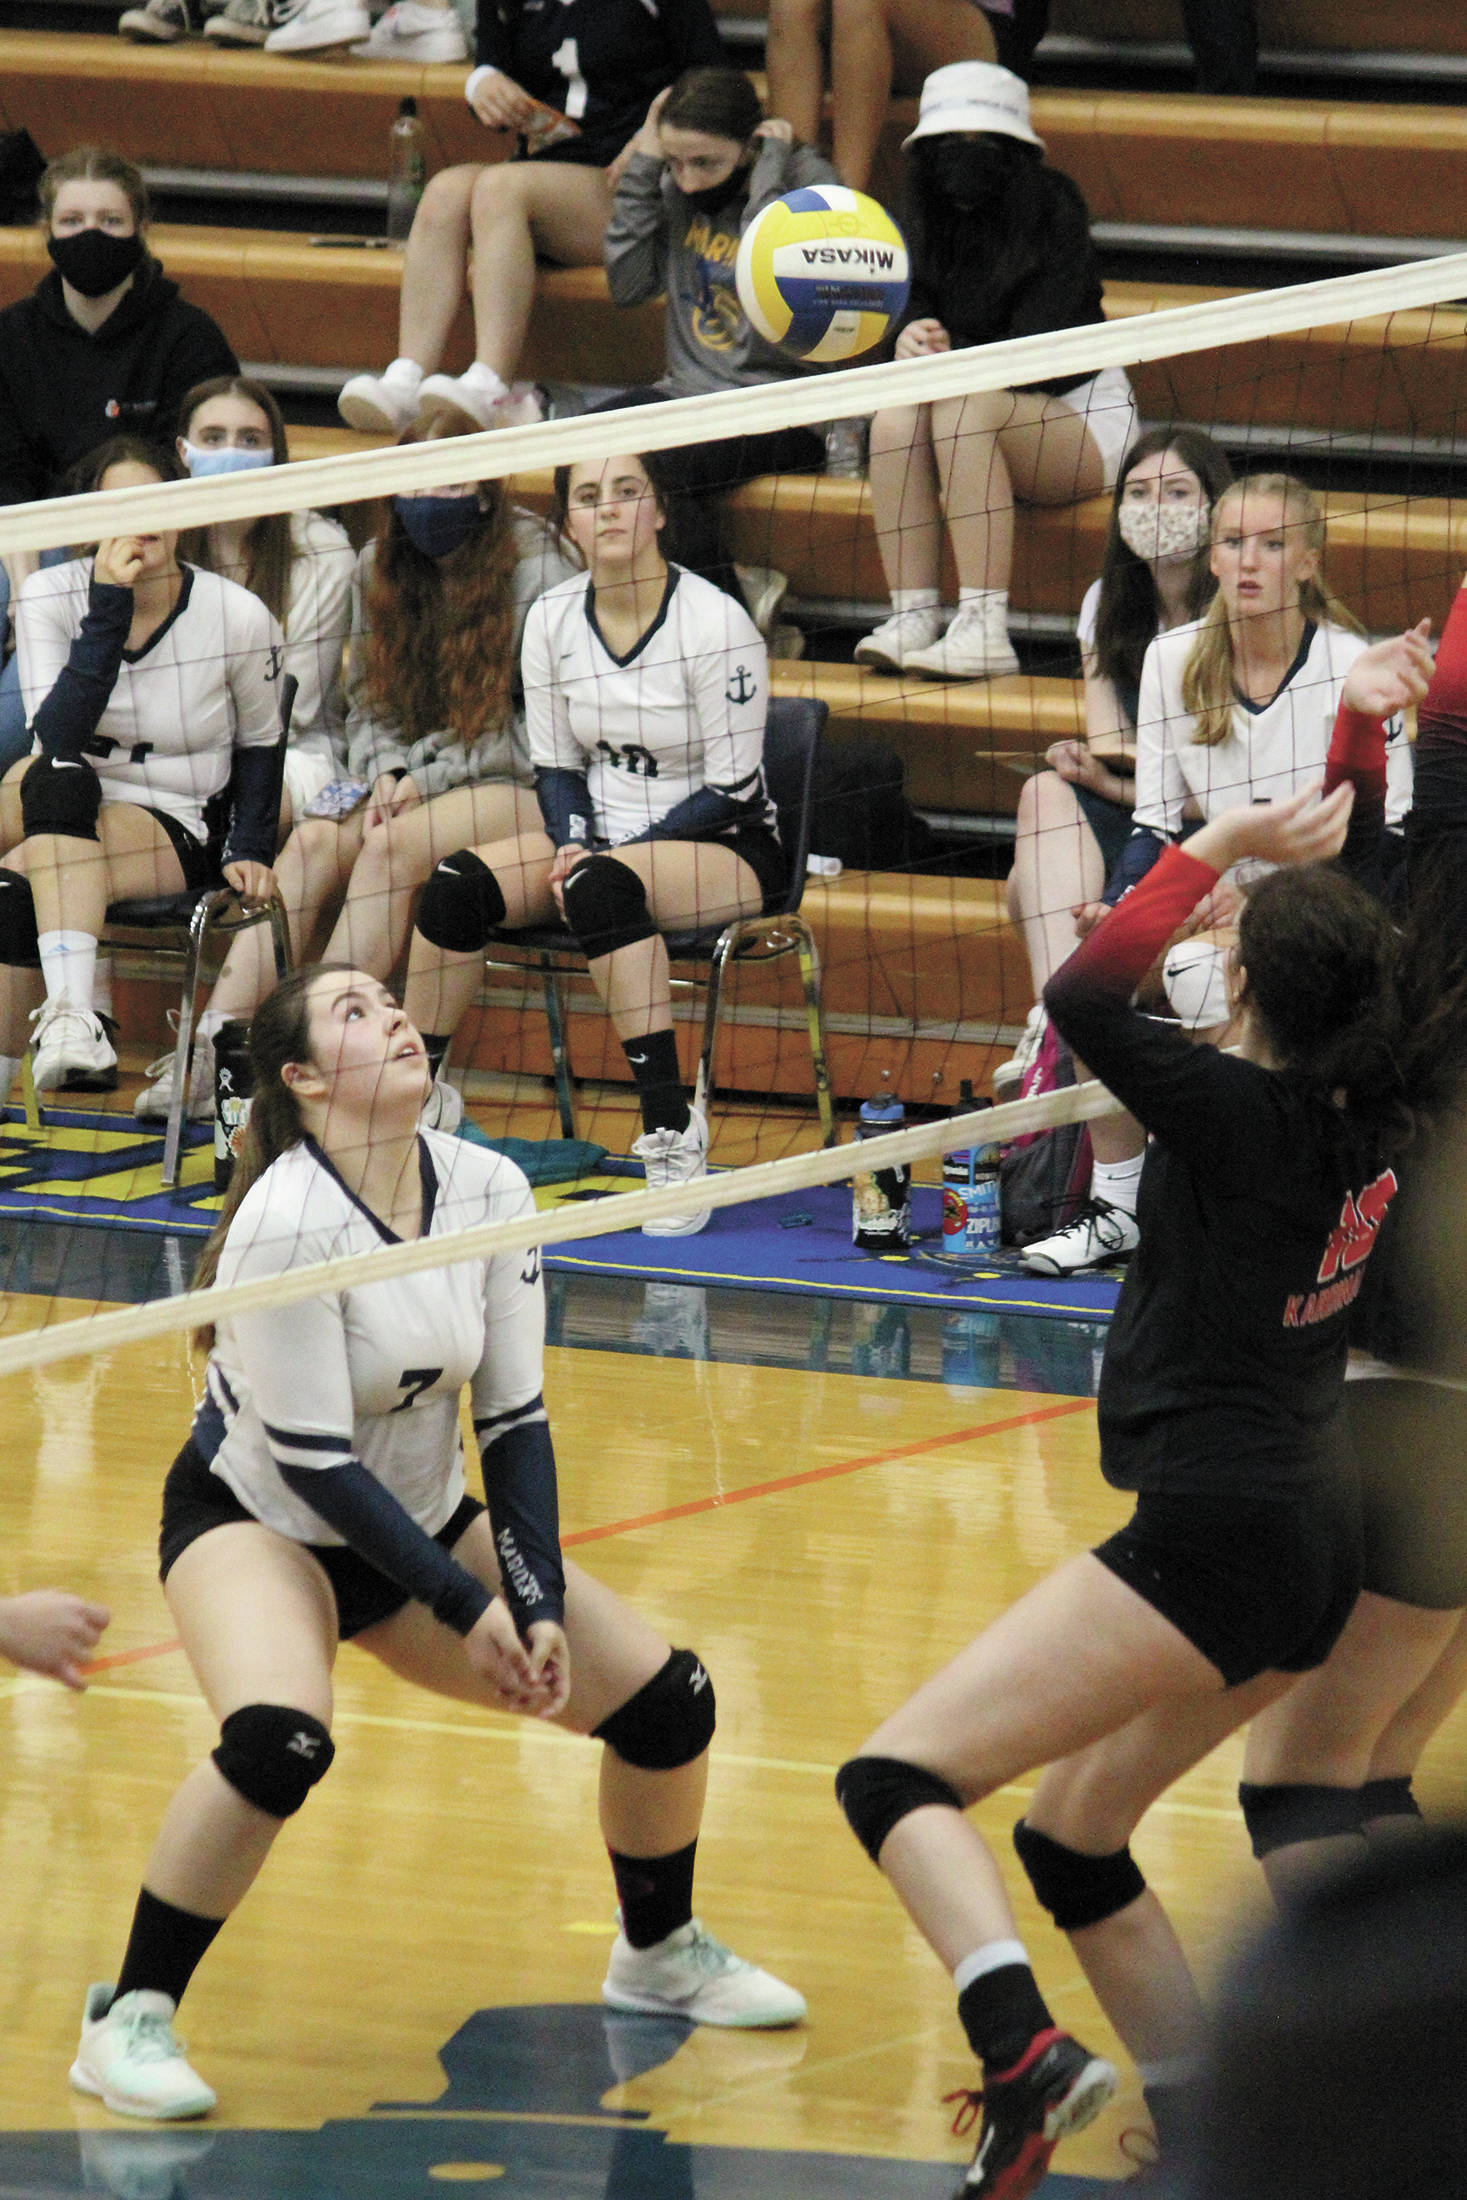 Homer's Katlyn Vogl waits for a blocked hit to come back down during a Tuesday, Oct. 6, 2020 volleyball game against Kenai Central High School in the Alice Witte Gymnasium in Homer, Alaska. (Photo by Megan Pacer/Homer News)